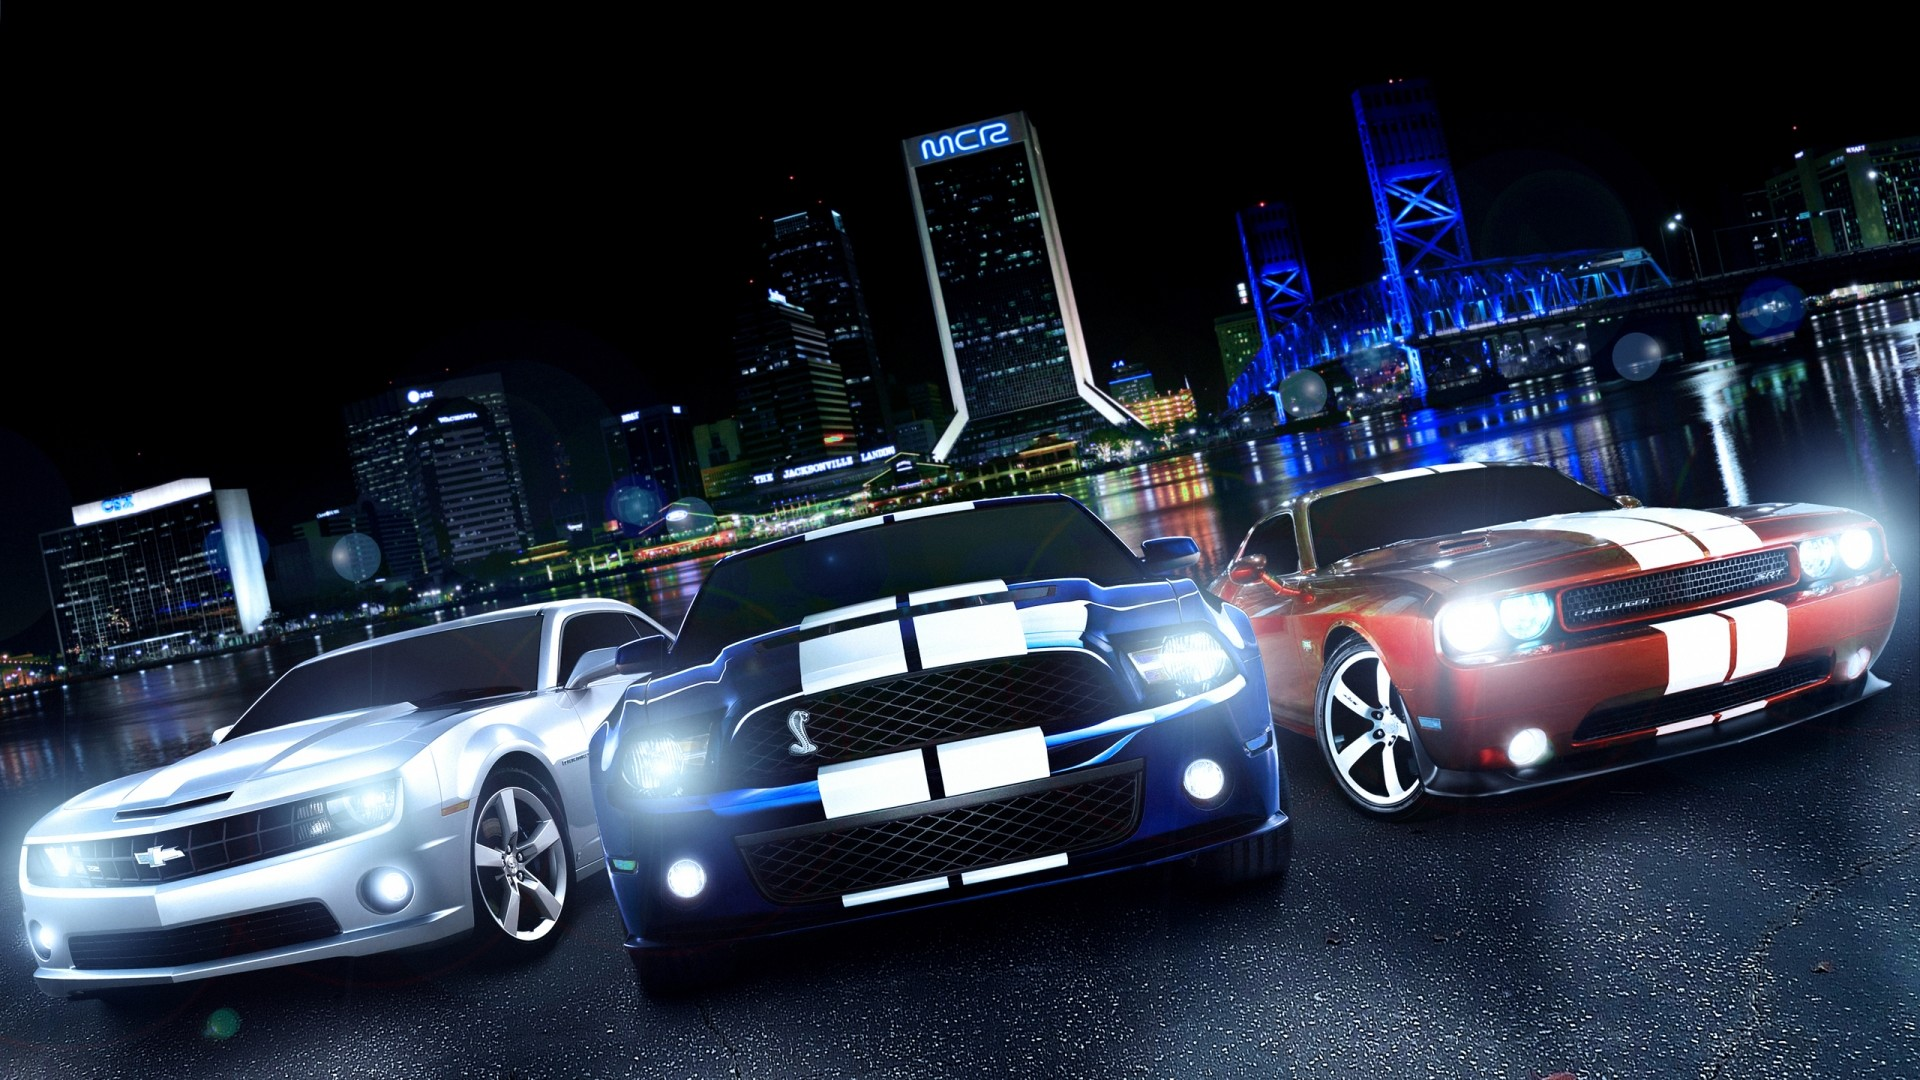 1920x1080 Muscle Car Wallpaper | Muscle Cars Wallpaper | HD Desktop Wallpapers